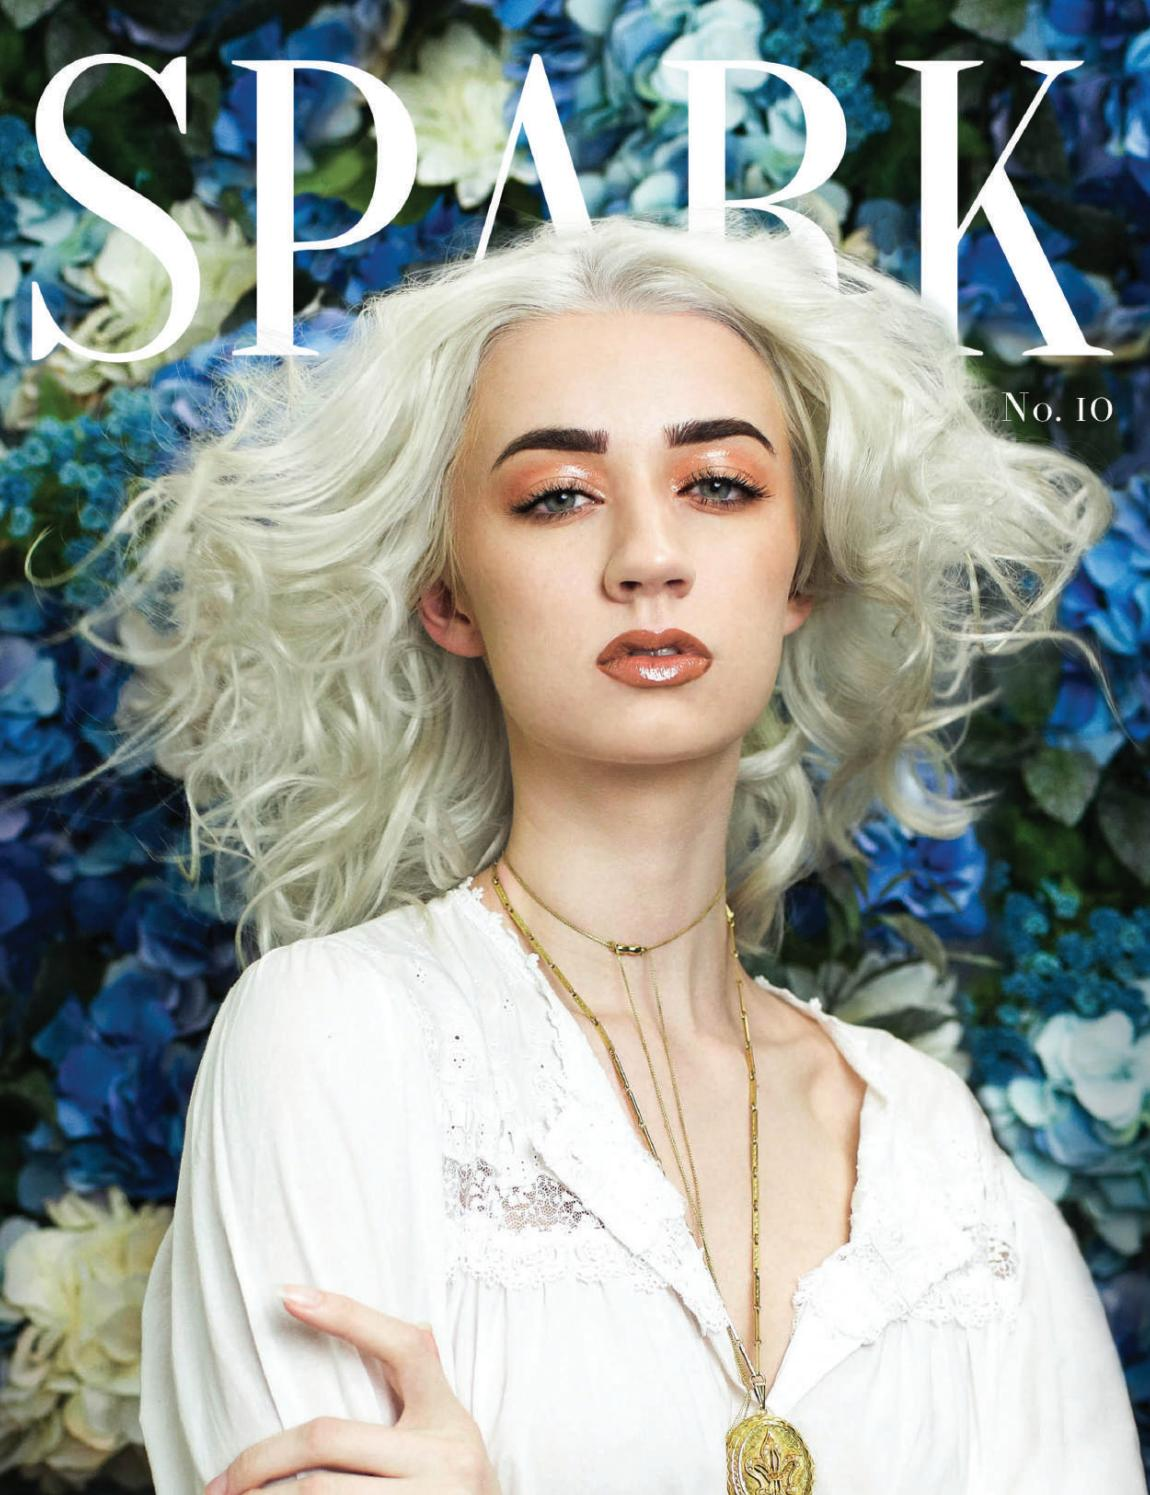 c899133784295b Spark Magazine No. 10 by Spark Magazine - issuu